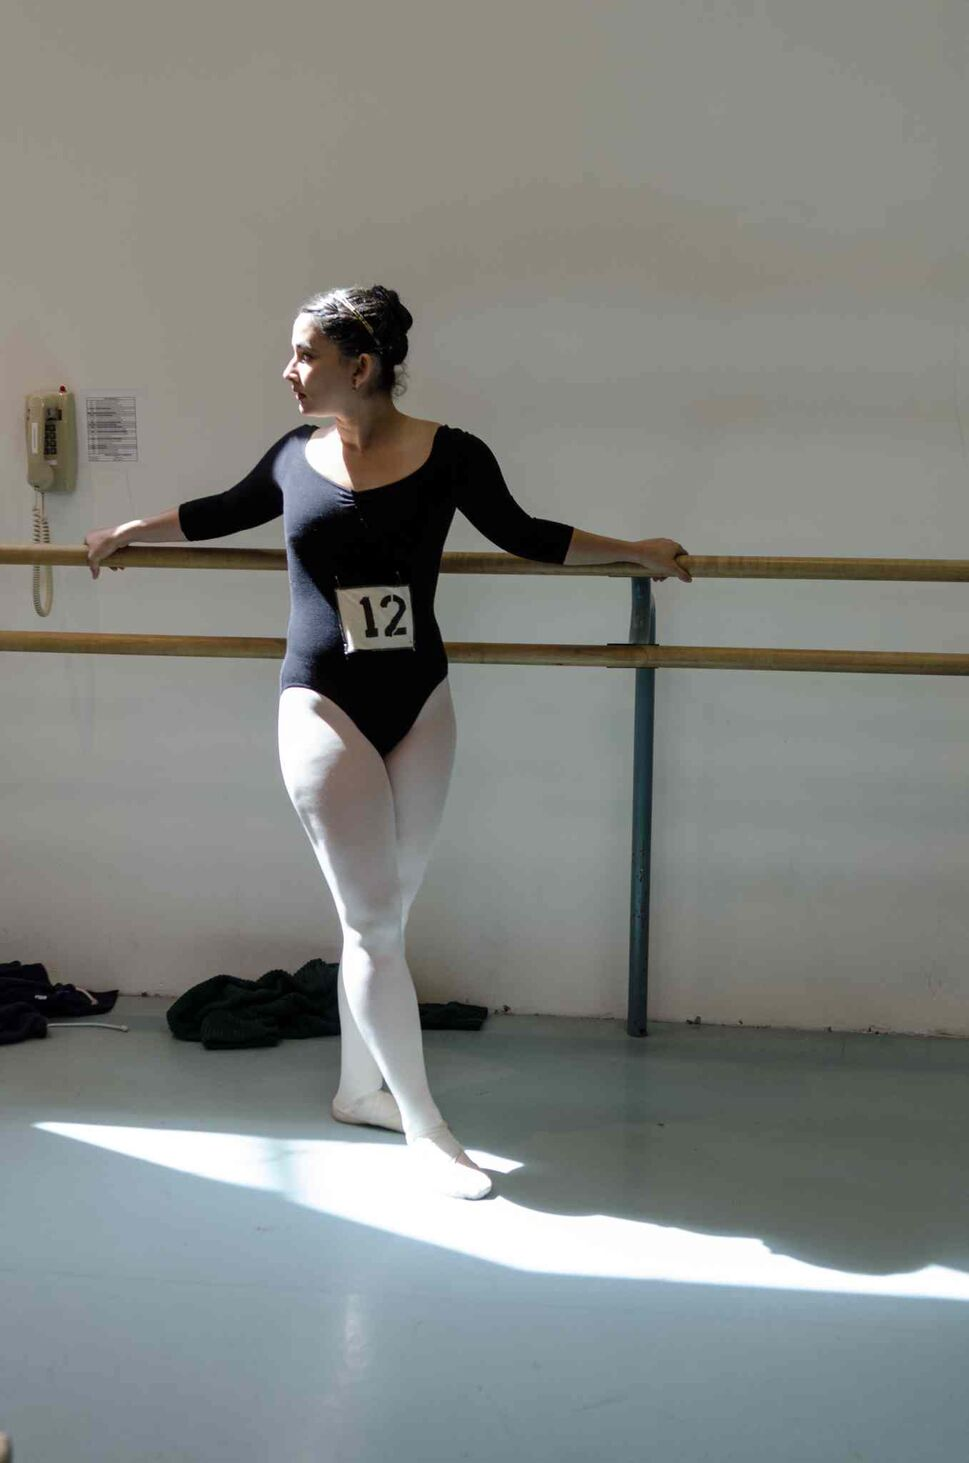 Adriana Ardila, 20, warms up before her audition. (EMILY CUMMING / WINNIPEG FREE PRESS)